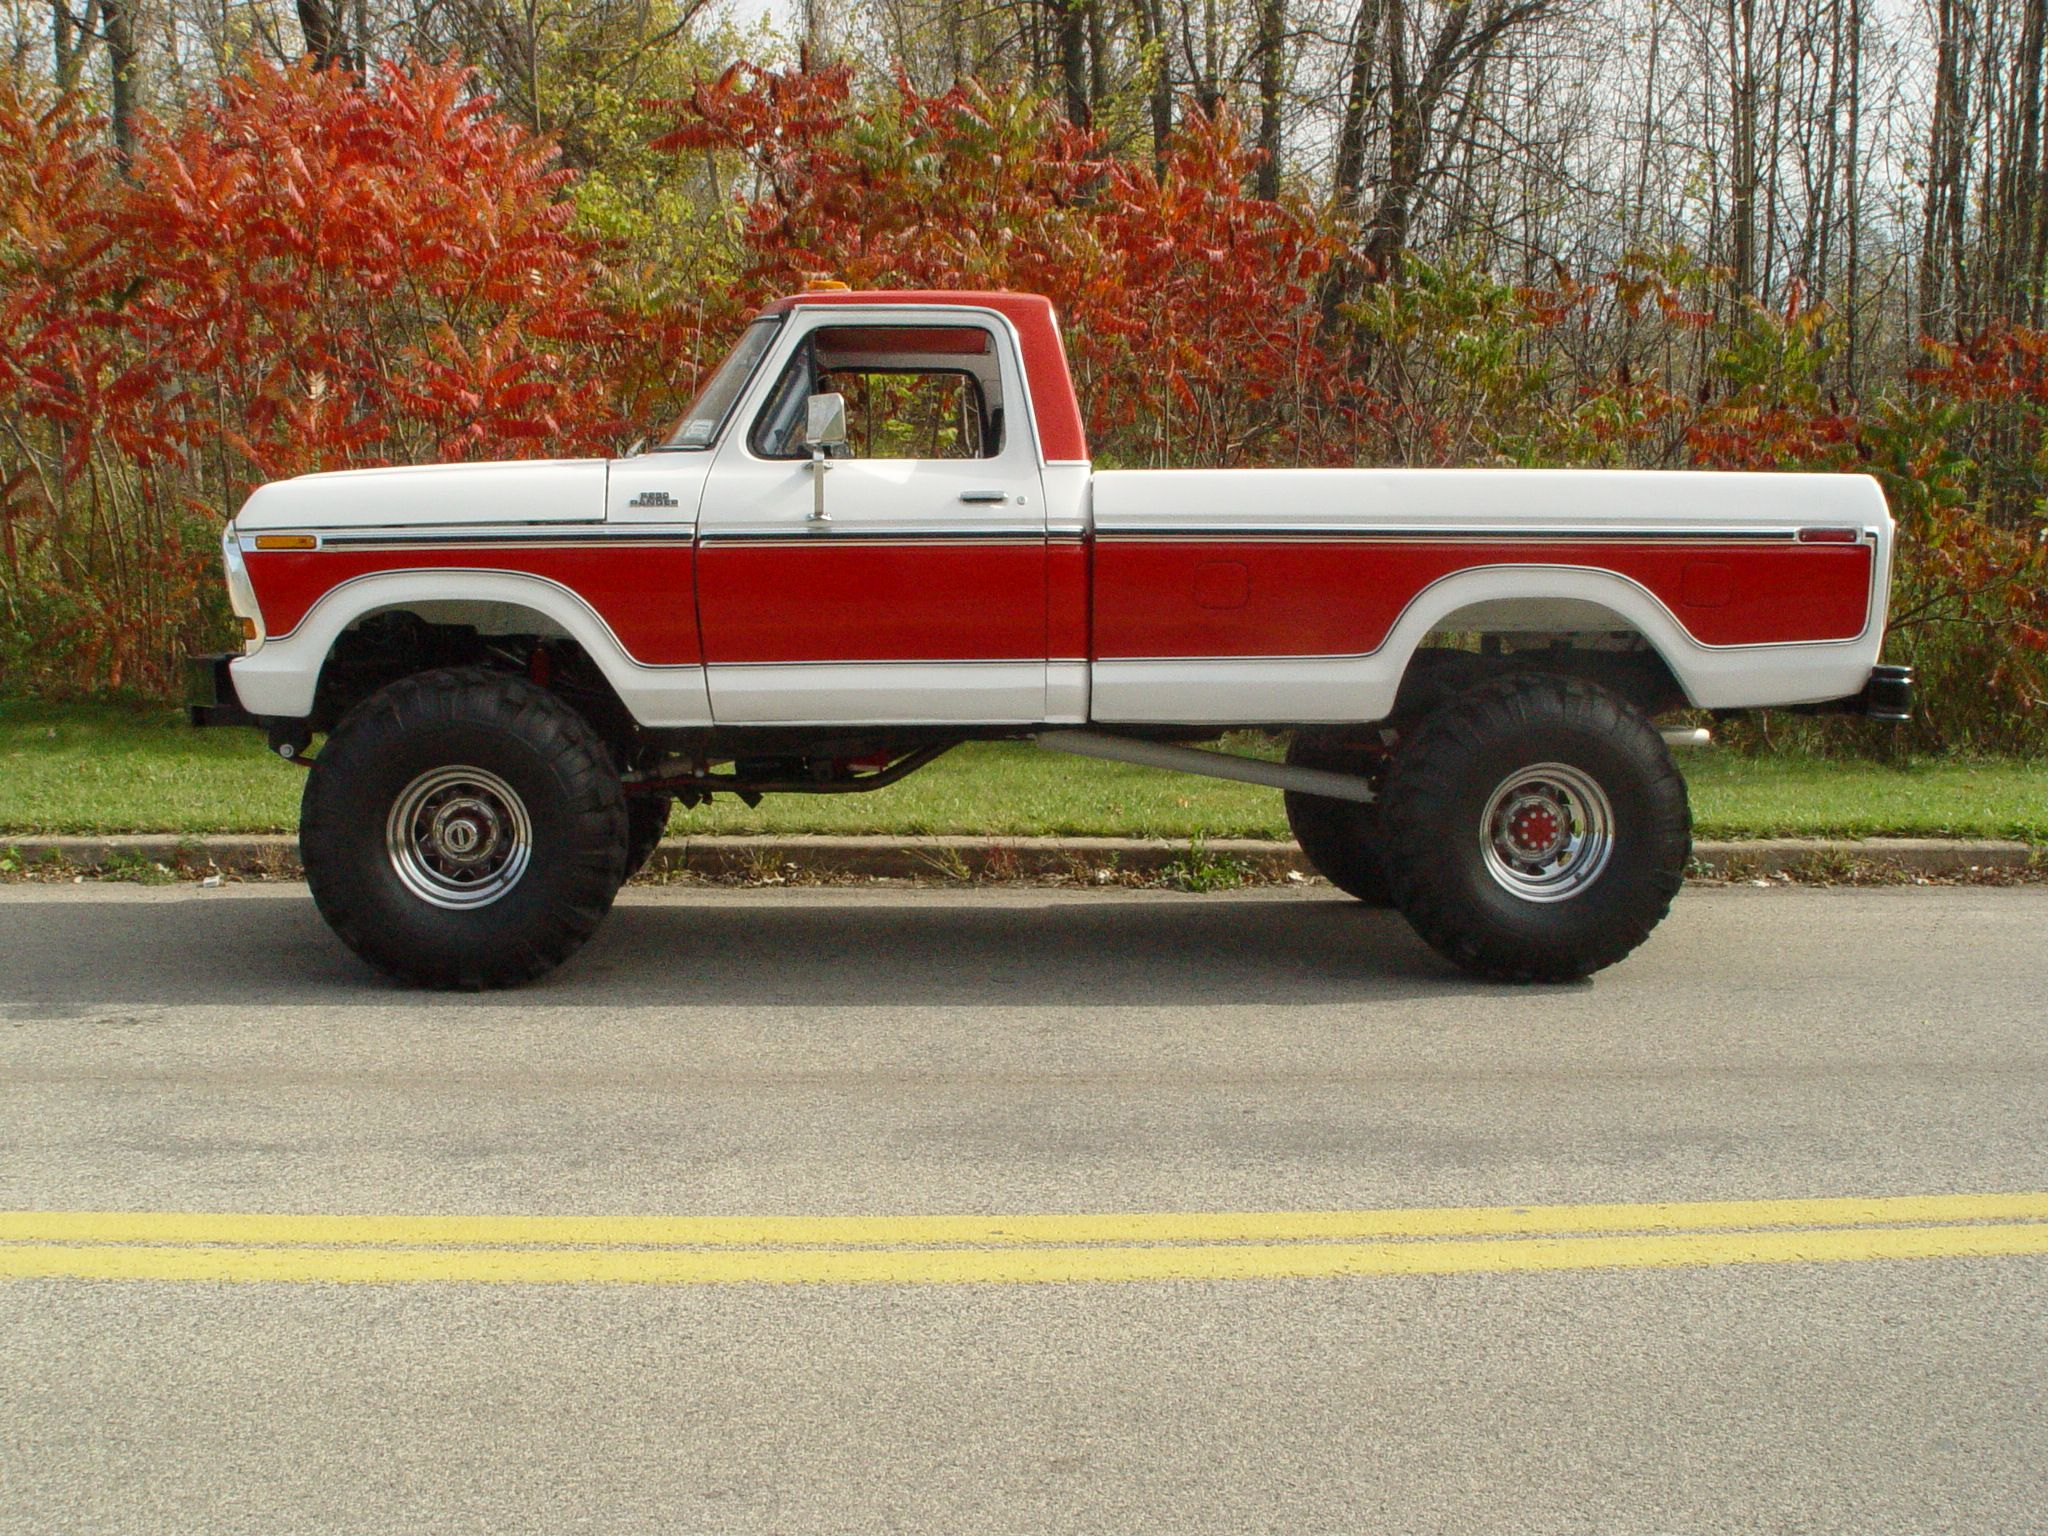 Very Nice White Red 1978 Ford F 150 4x4 Mine Is A 2 Wheel Drive Identical Style Would Be Nice Up 4x4 Ford Pickup Trucks Classic Ford Trucks Ford Trucks